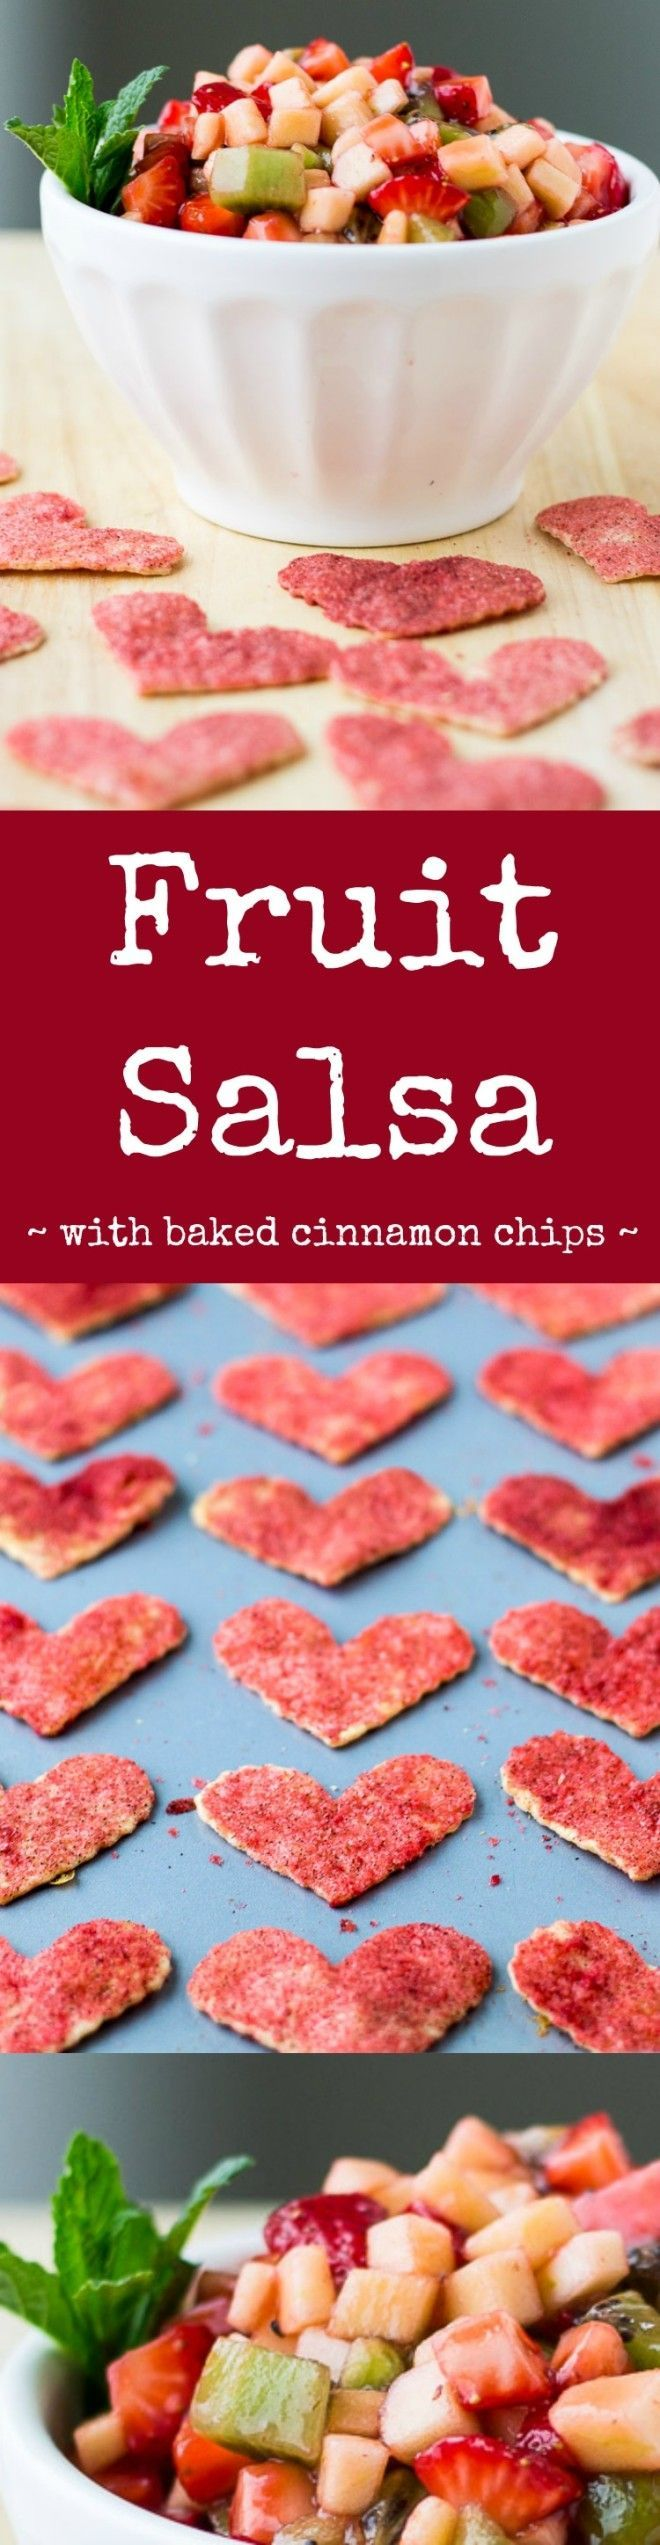 Fruit Salsa makes a sweet and surprising addition at parties, dessert, or even snack time!. Dig in with homemade cinnamon chips, buttery and sweet, definitely addictive. #fruitsalsa #partyfood #snack #valentinesday